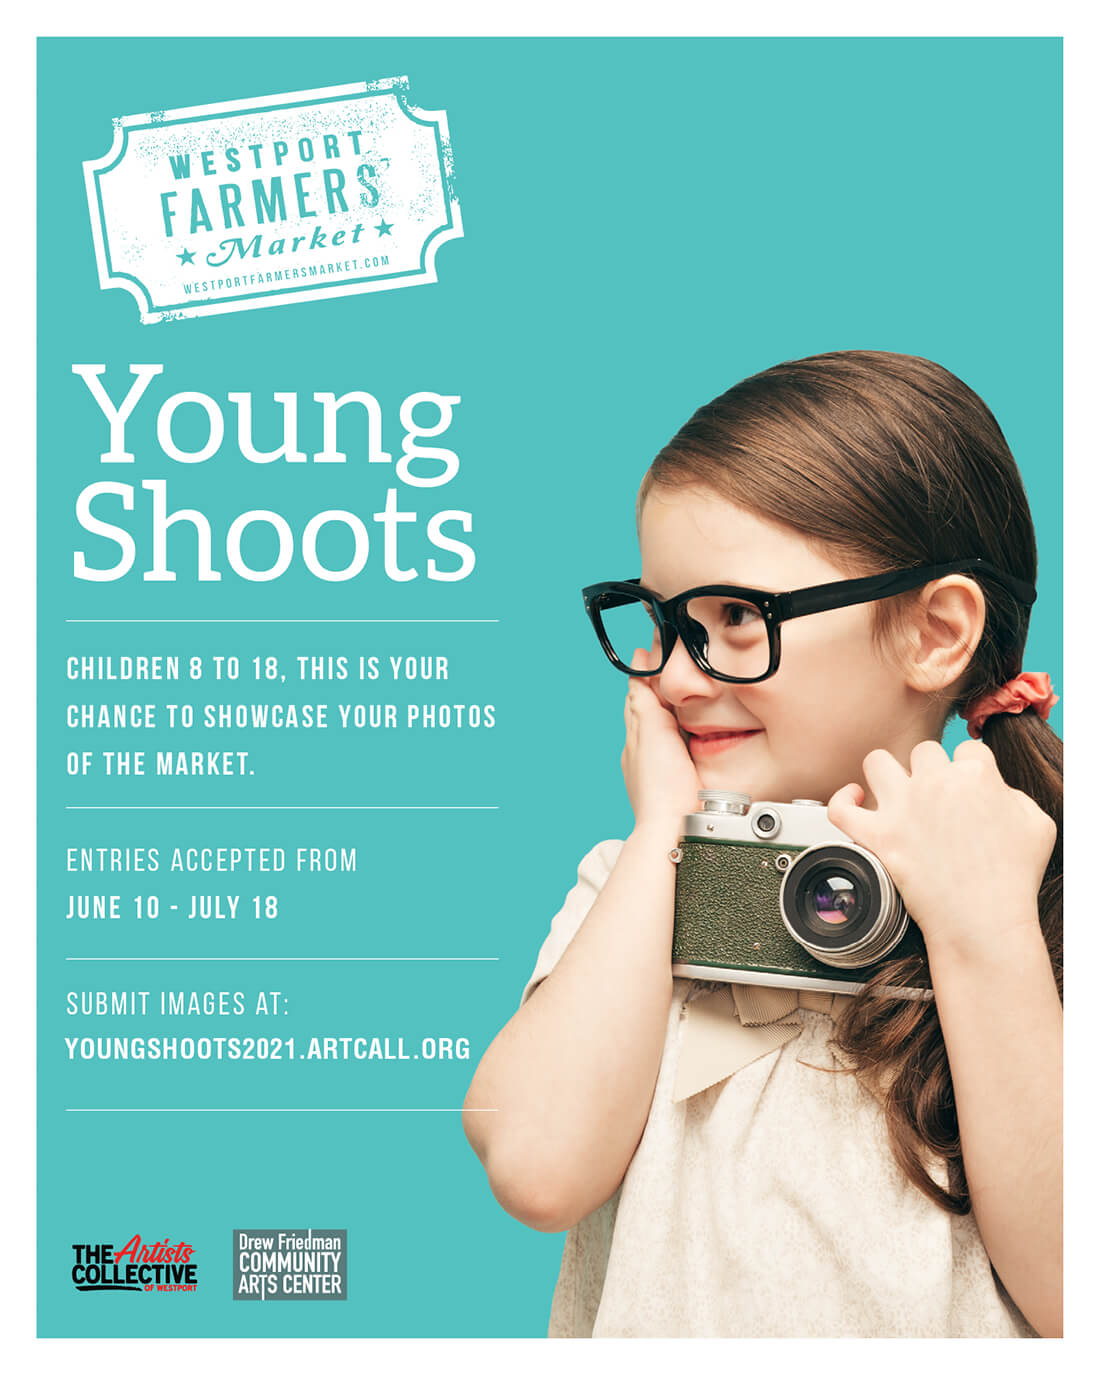 Young Shoots entries accepted June 10 - July 18